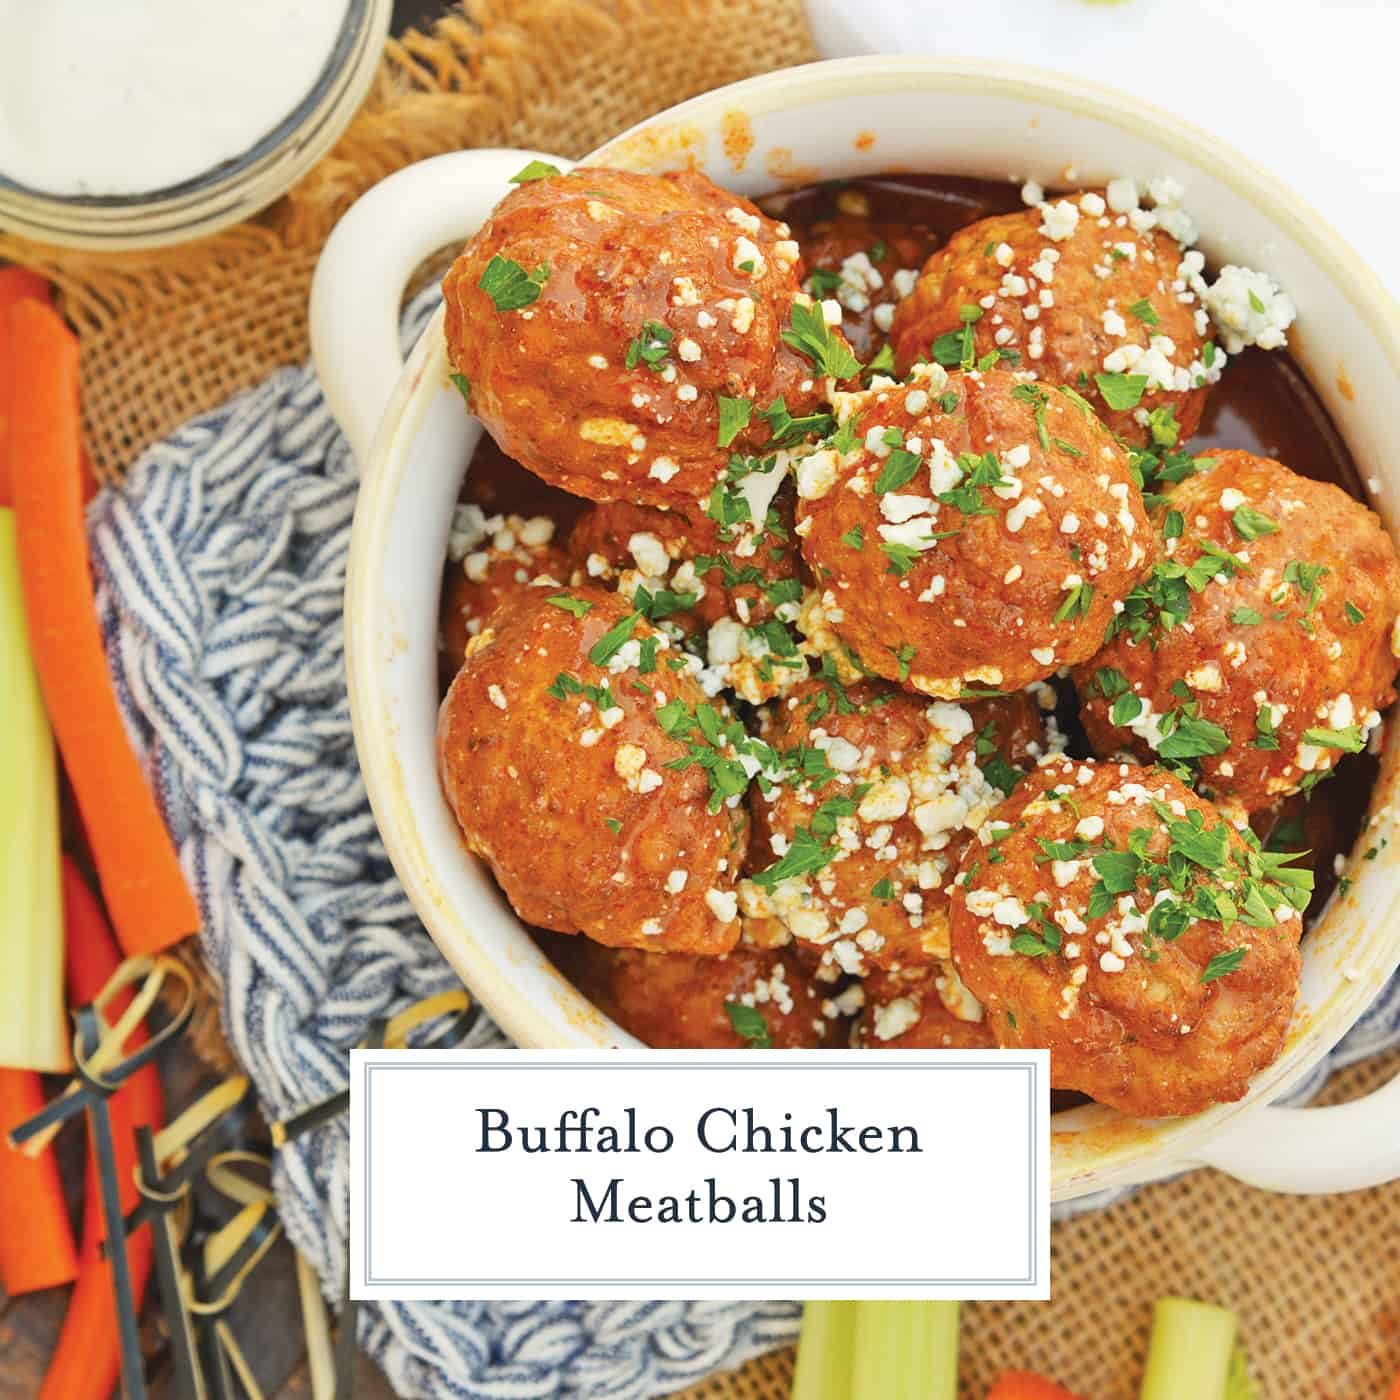 Buffalo Chicken Meatballs are a quick and easy appetizer that will spice up any party! Simmered in spicy wing sauce and blue cheese, these will be a winner! #buffalochicken #partymeatballs #buffalochickenmeatballs www.savoryexperiments.com